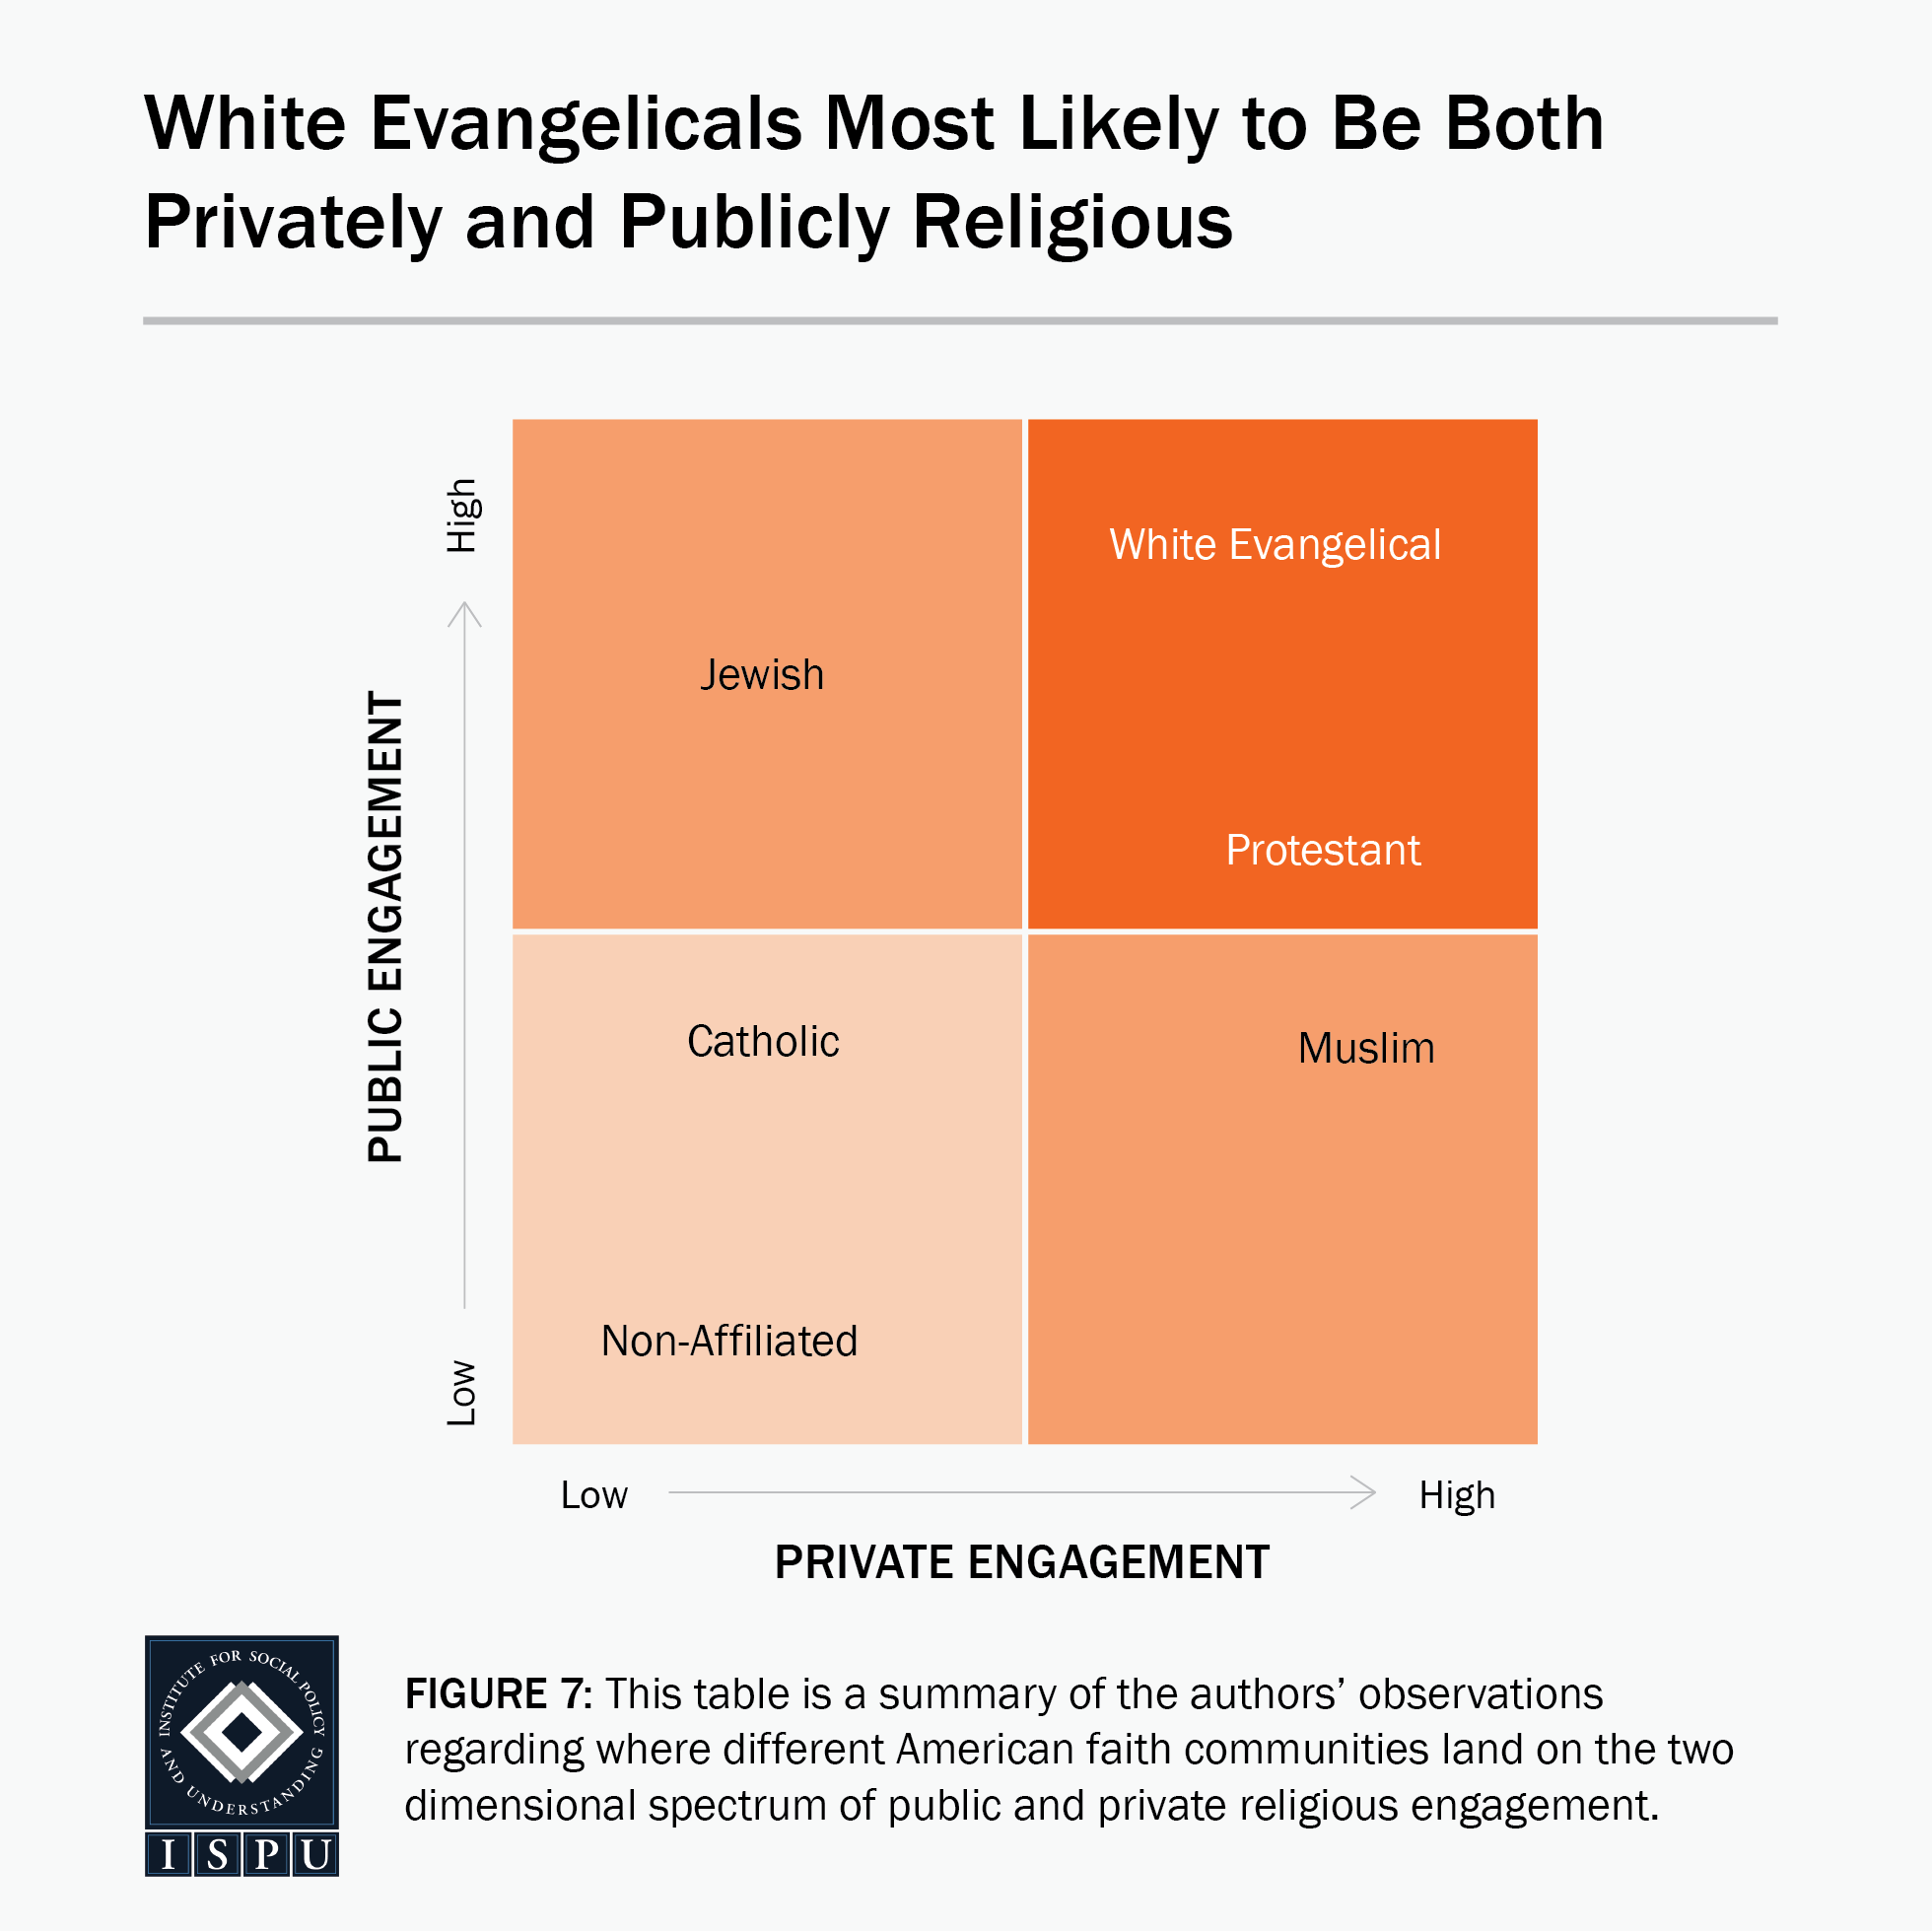 Figure 7: A graphic showing that white Evangelicals are the most likely faith group to be both privately and publicly religious